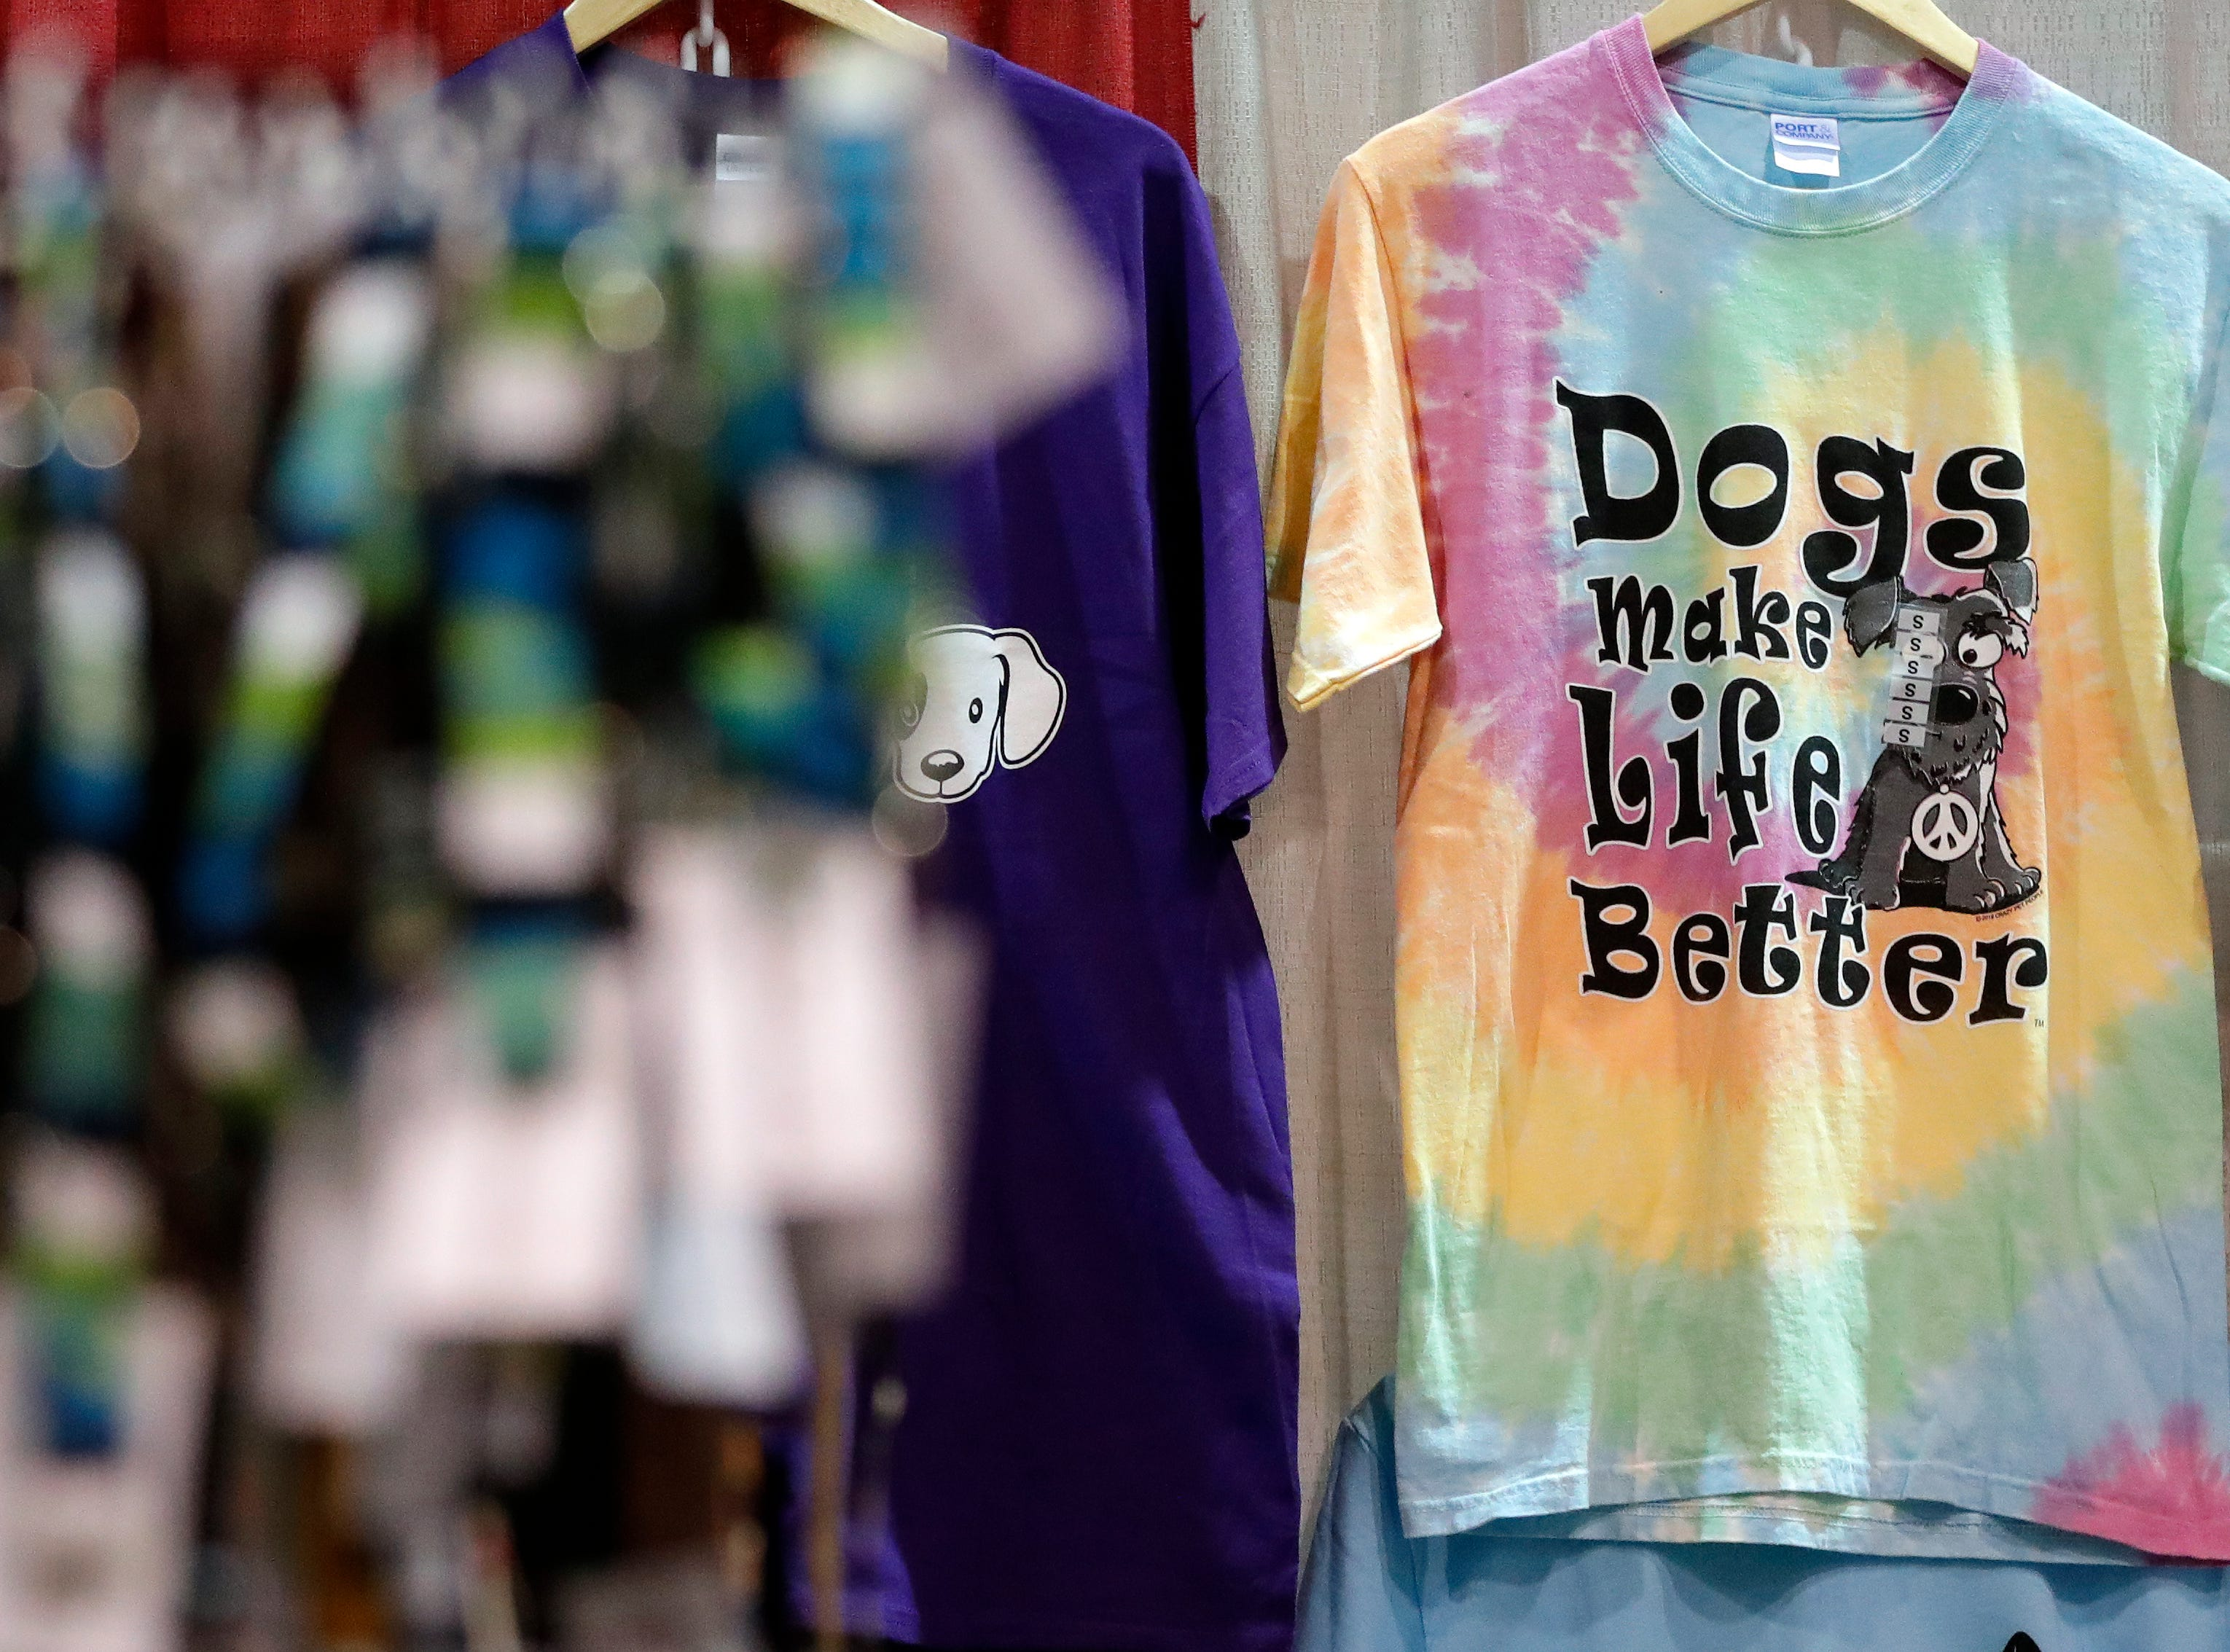 The WBAY Pet Expo is being held April 12-14, 2019 at Brown County Veterans Memorial Arena and Shopko Hall in Ashwaubenon, Wis. The expo is the last event to be held at the arena before it is demolished.